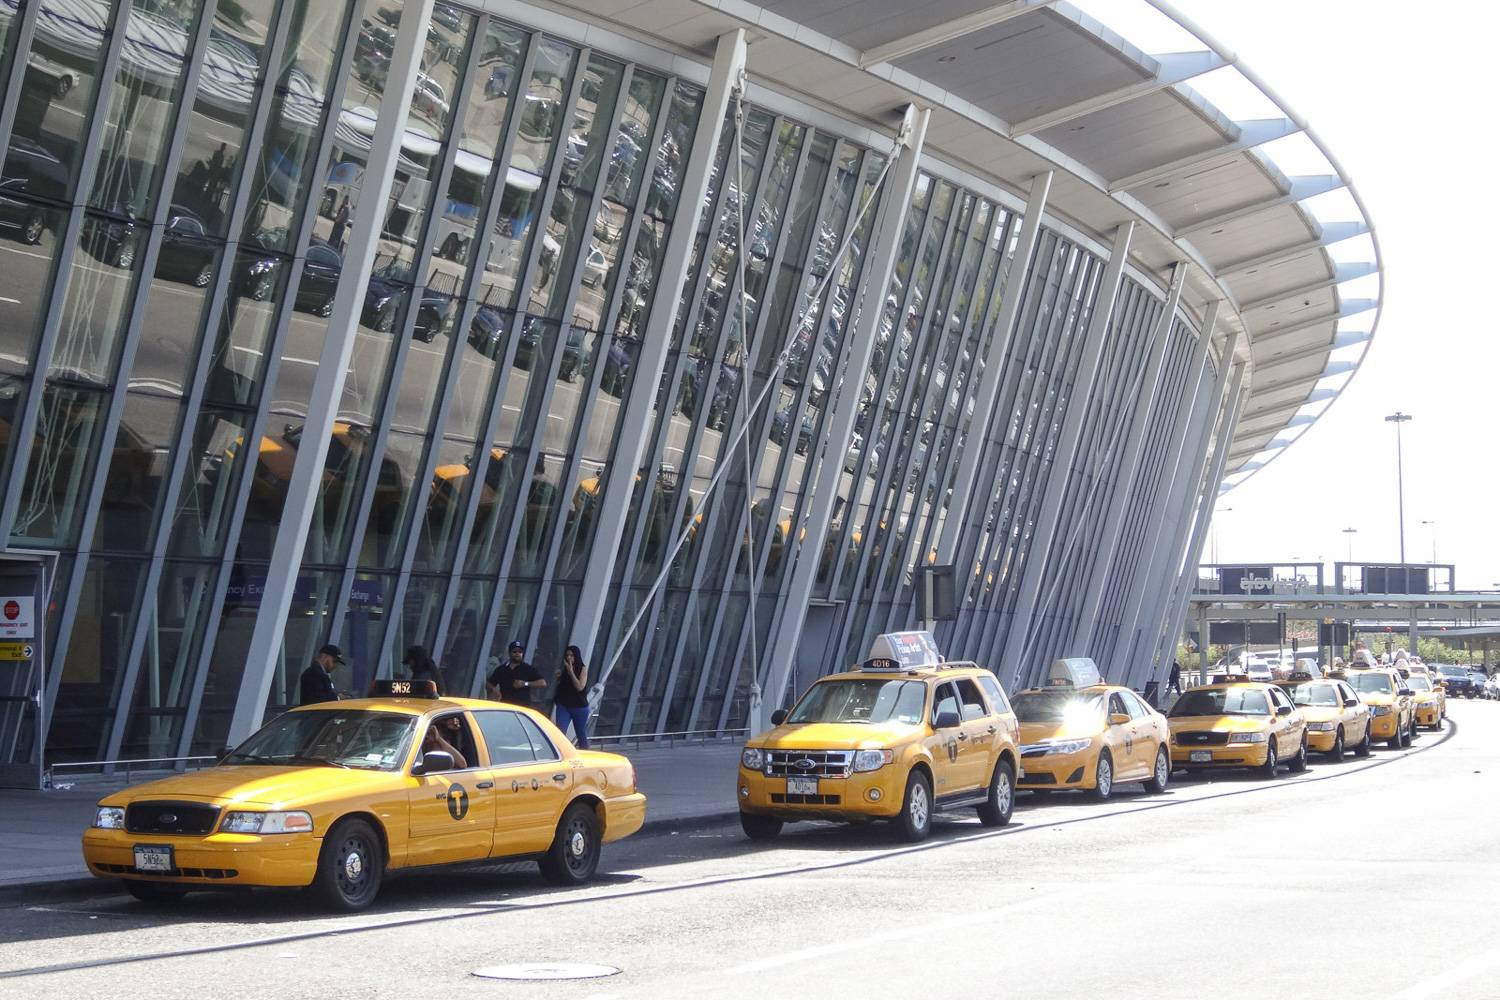 Image of NYC yellow taxis waiting to pick up riders at the curb of JFK airport.